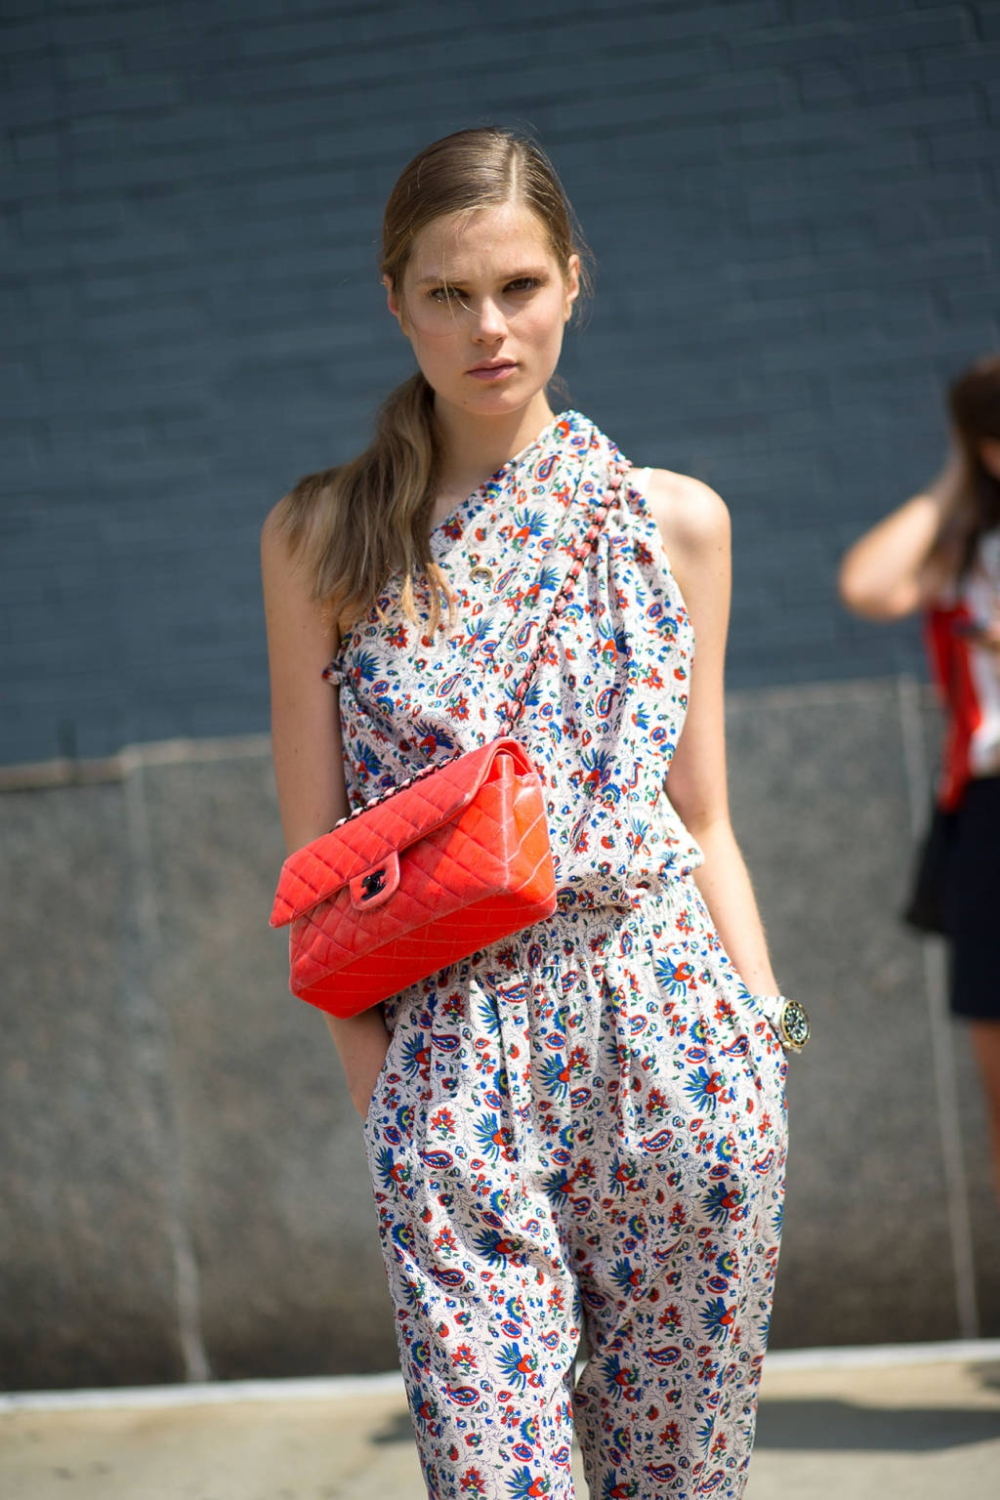 studded-hearts-NYFW-Spring-Summer-2015-shows-streetstyle-orange-chanel-bag